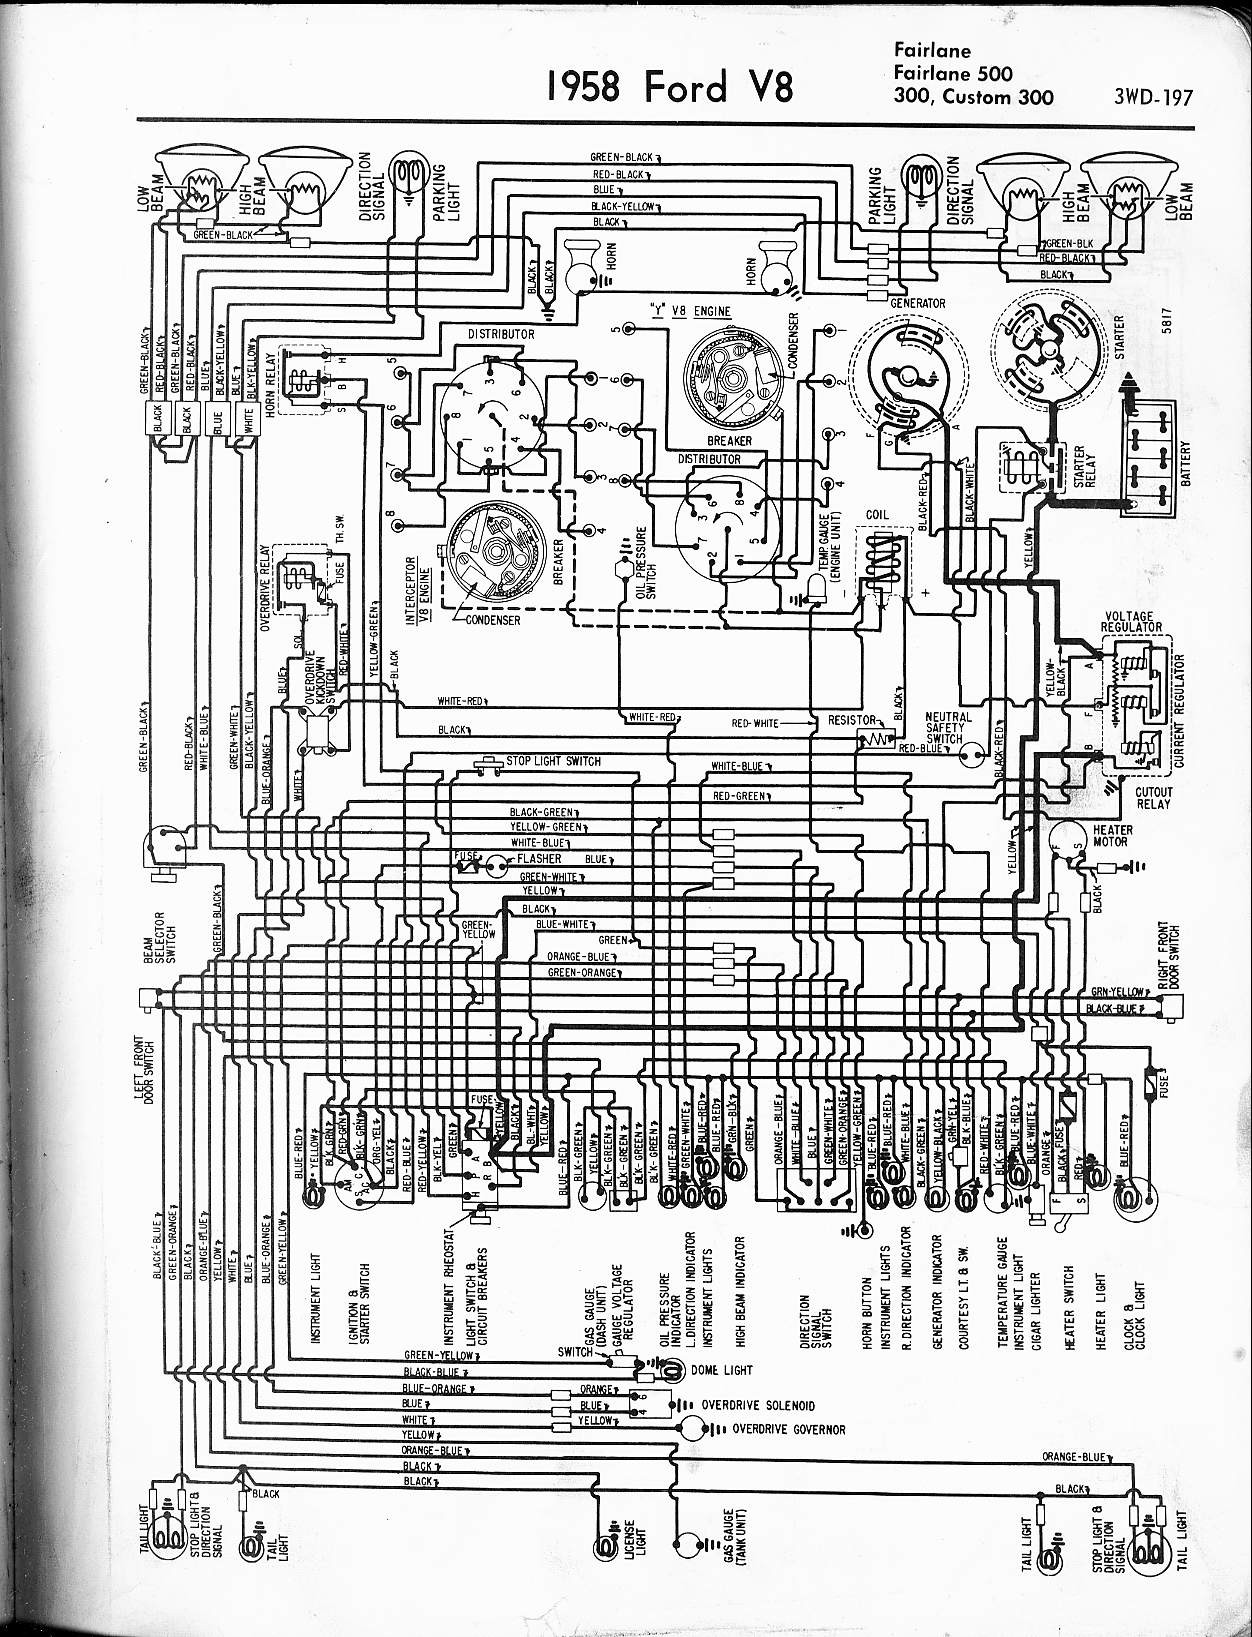 1958 Ford Fairlane Wiring Diagram Services Pinto Ignition Simple Electronic Circuits U2022 Rh Wiringdiagramone Today 1969 Mustang